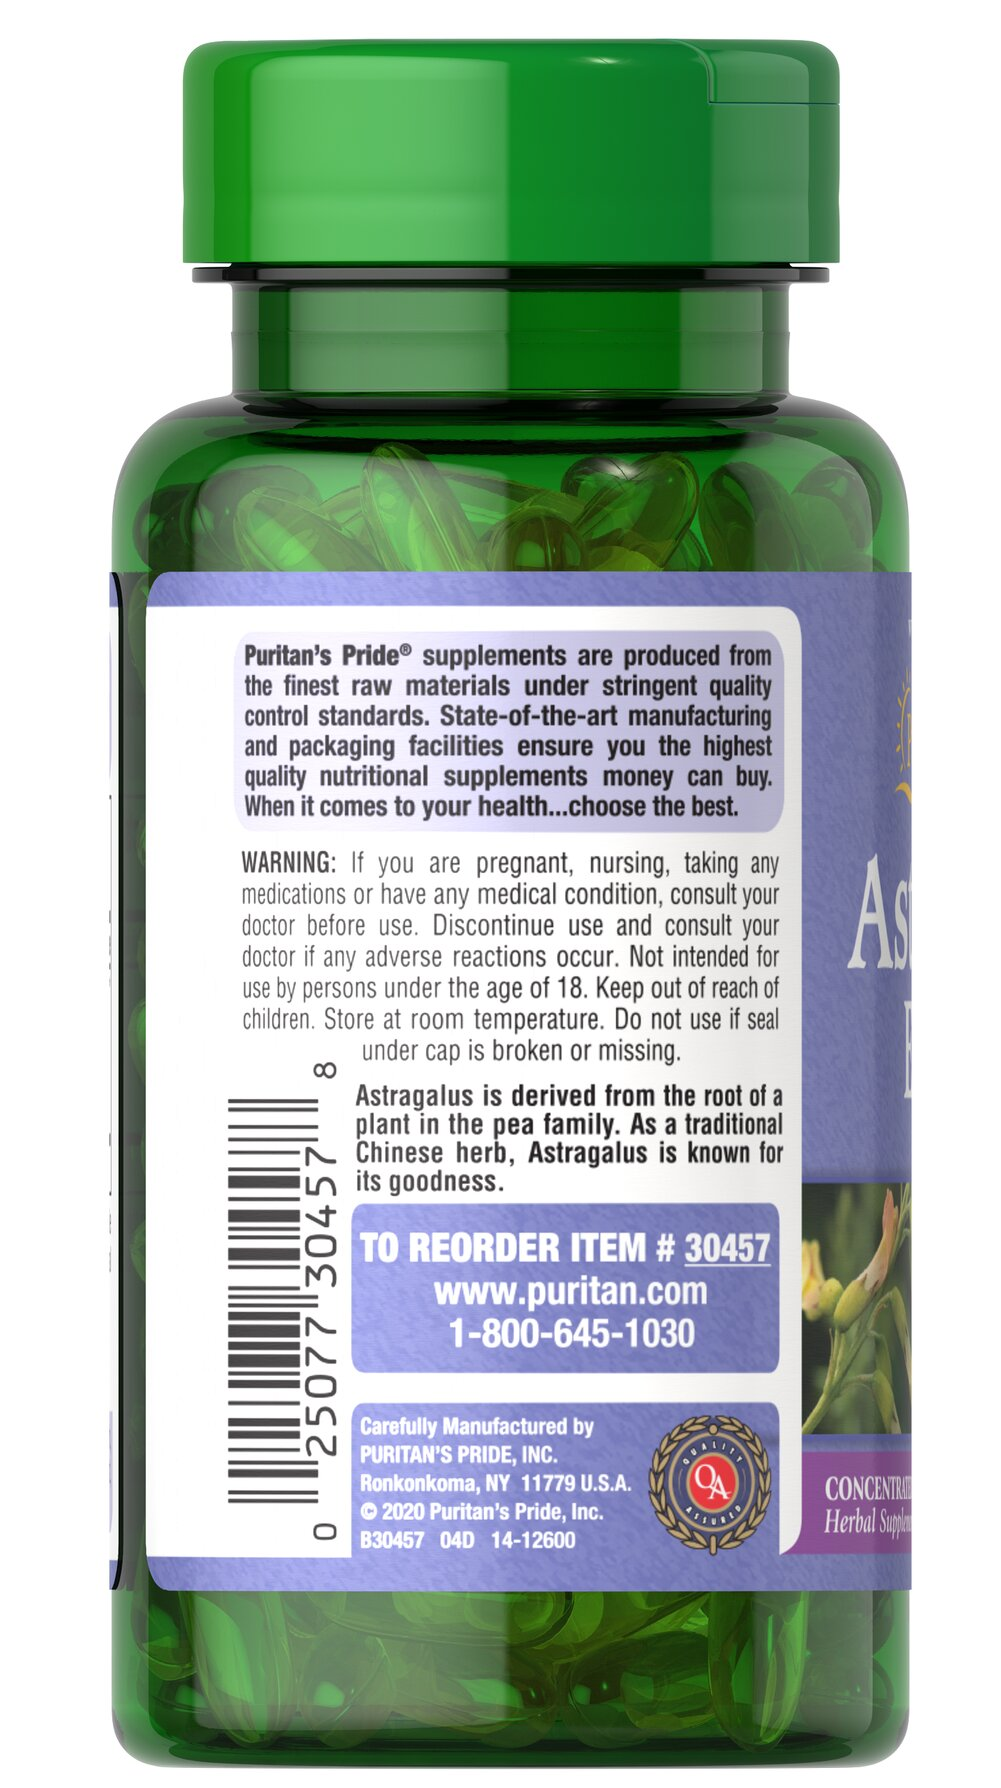 Astragalus Extract 1000 mg* Thumbnail Alternate Bottle View